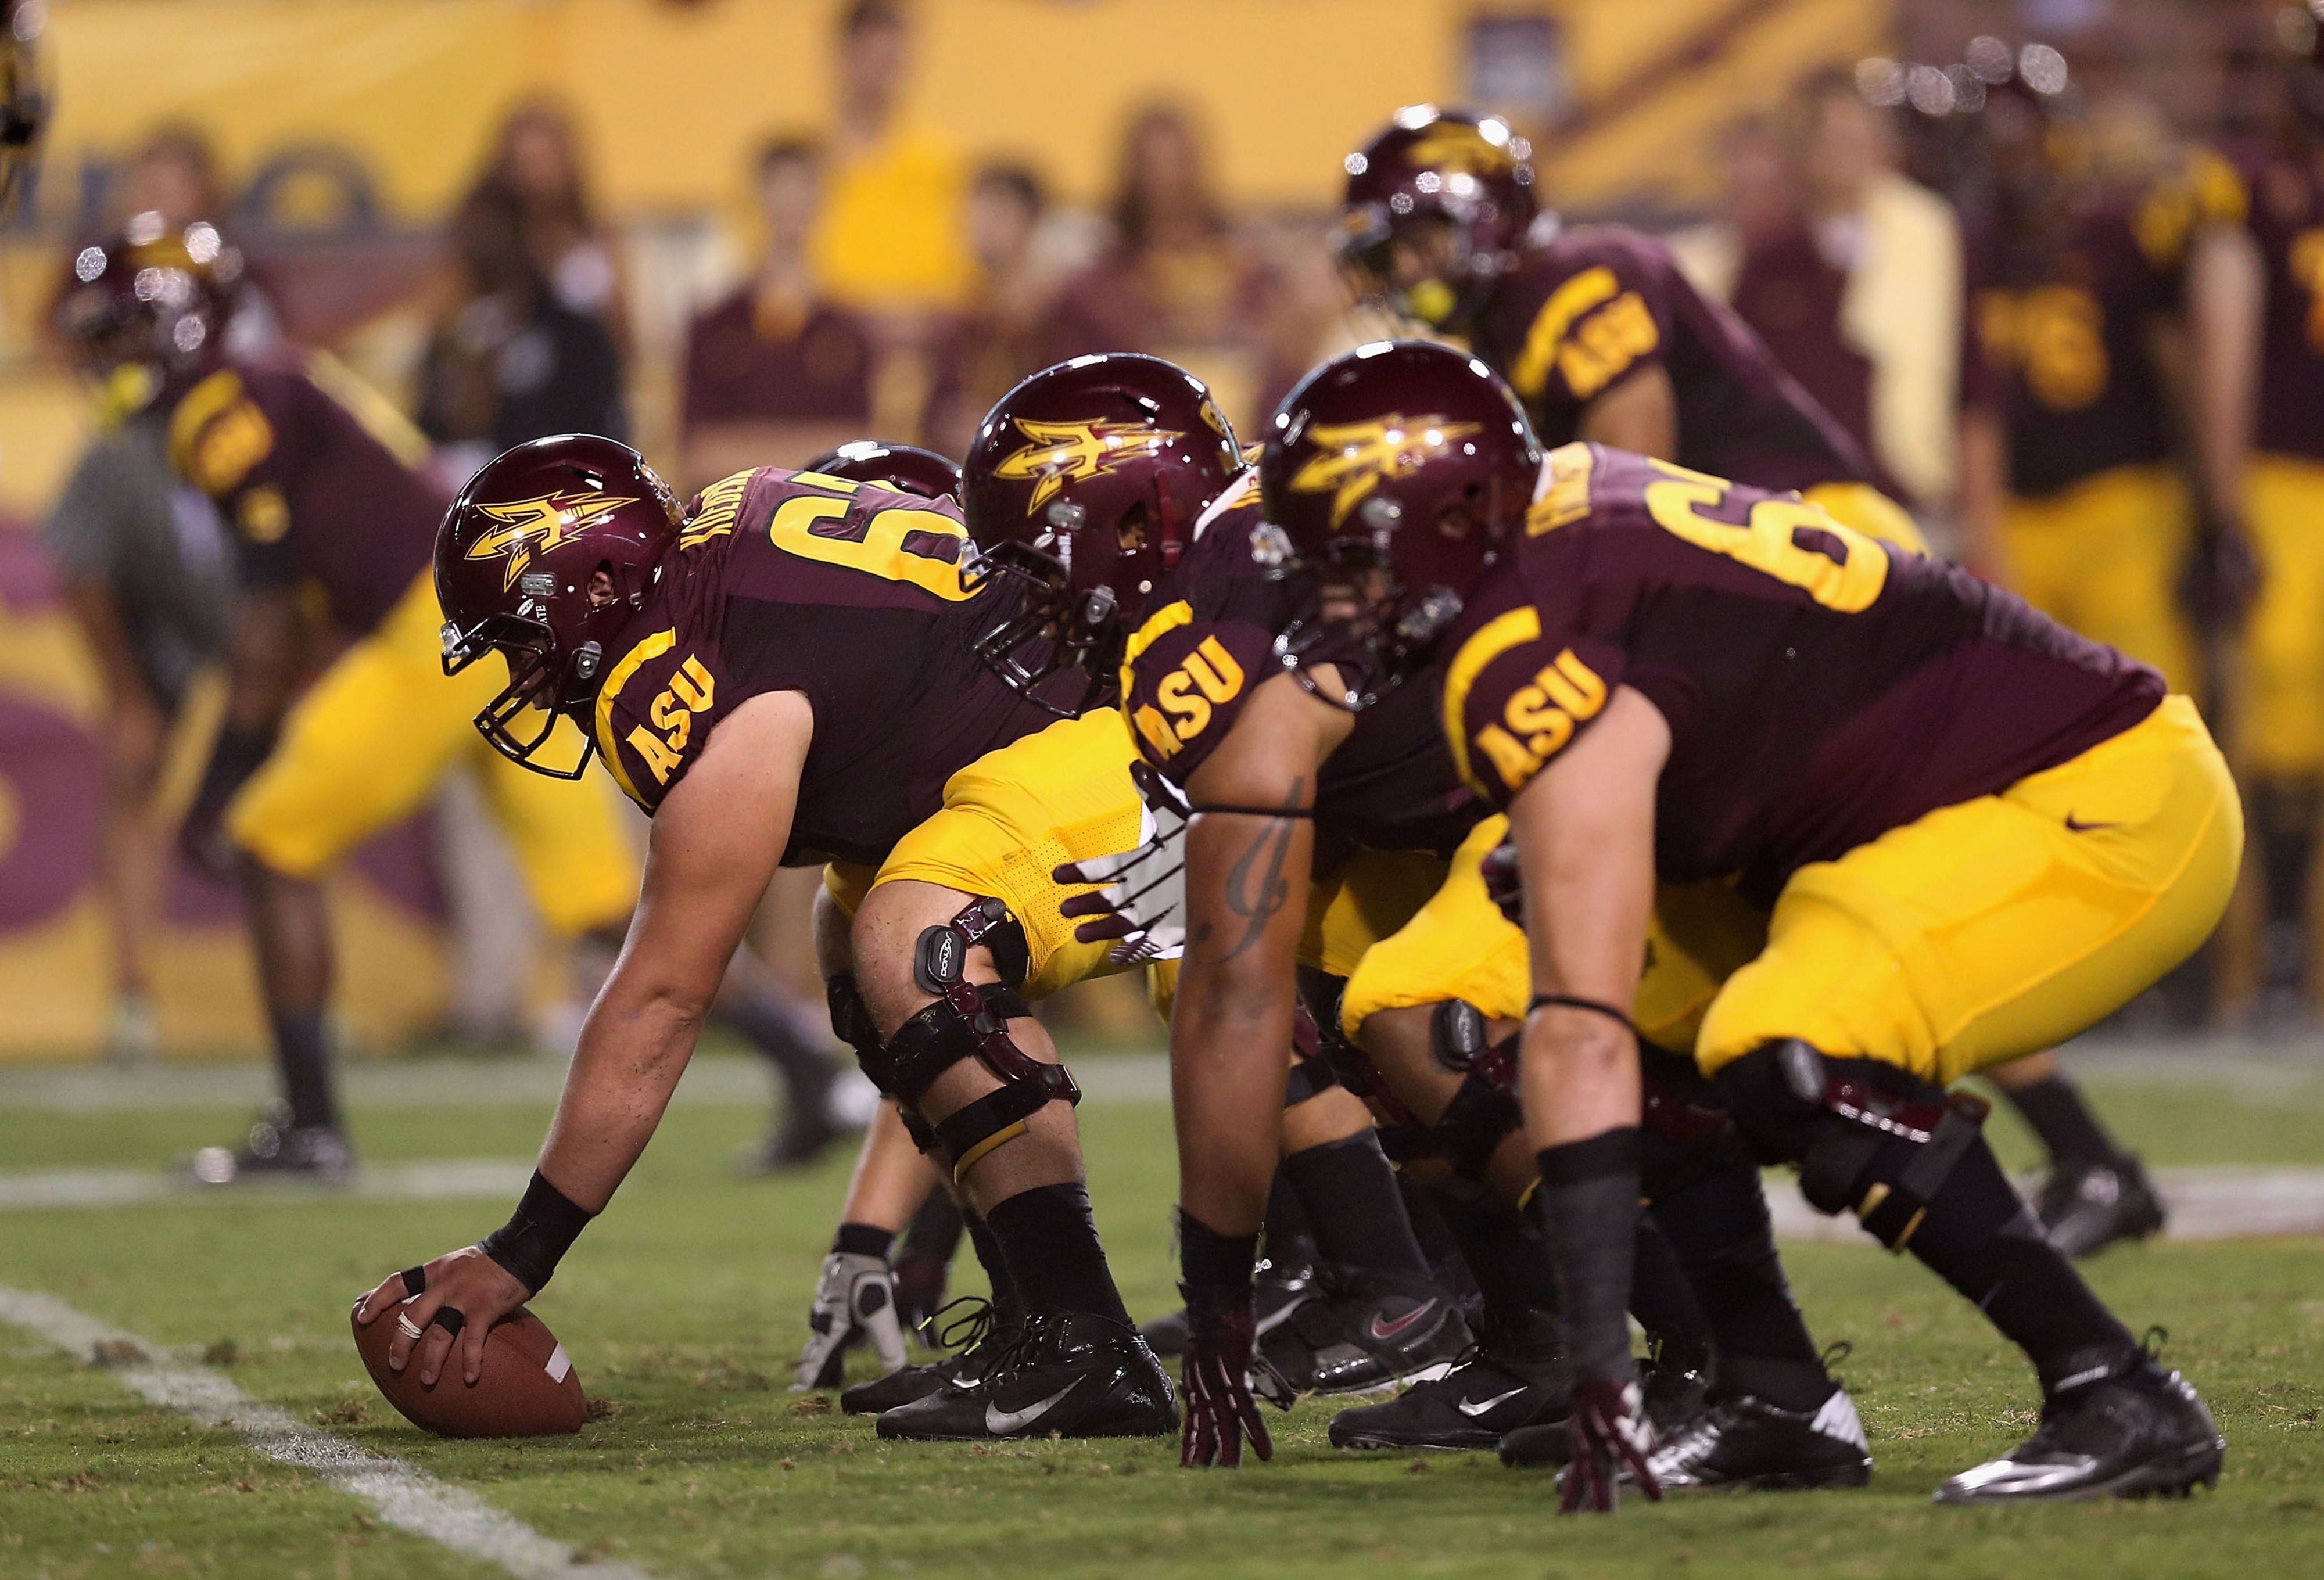 The ASU offensive line will receive a major boost when Westerman becomes eligible